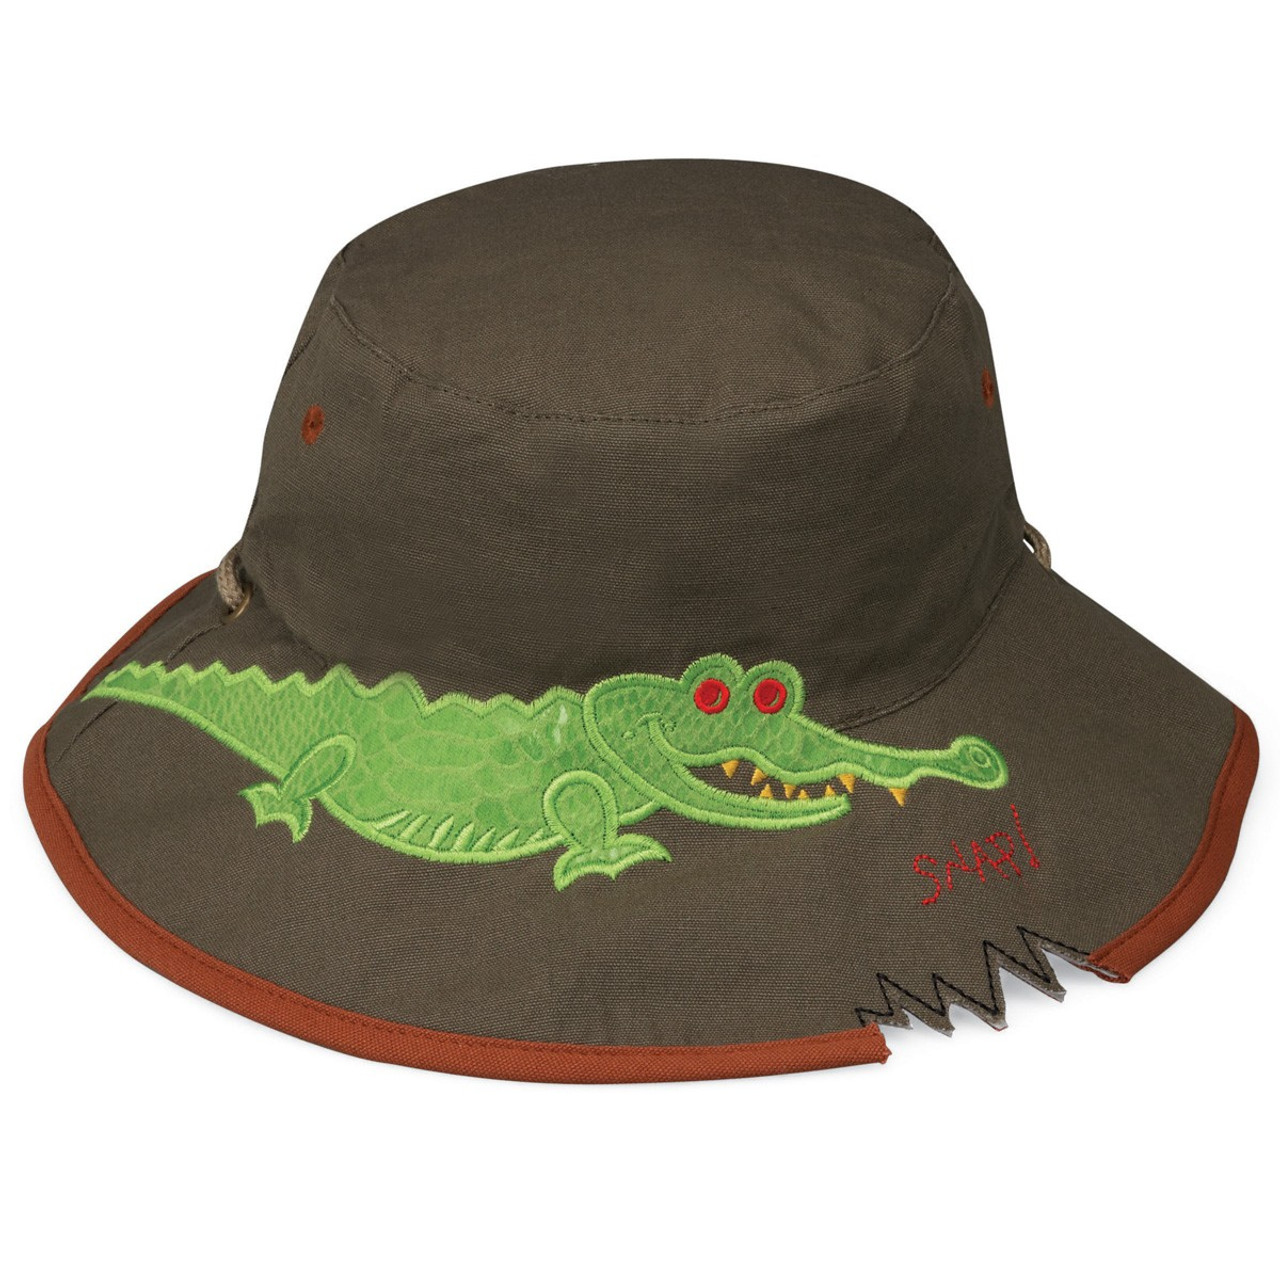 Wallaroo Boys UV UPF50 crocodile sun hat 589134a52225